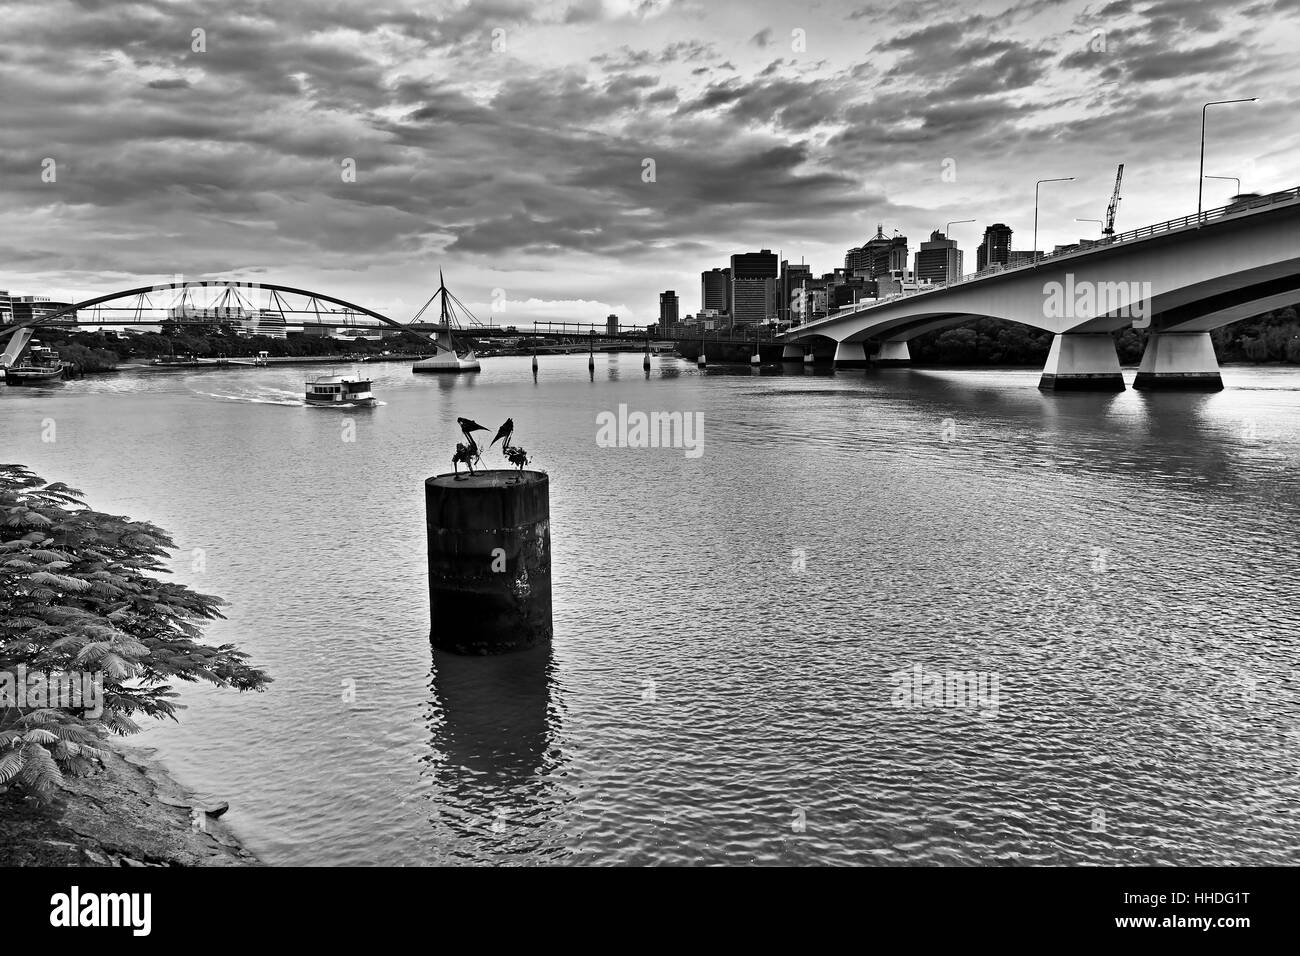 Brisbane city CBD across the river between Captain Cook's bridge and pedestrian bridge at sunrise in black-white. - Stock Image